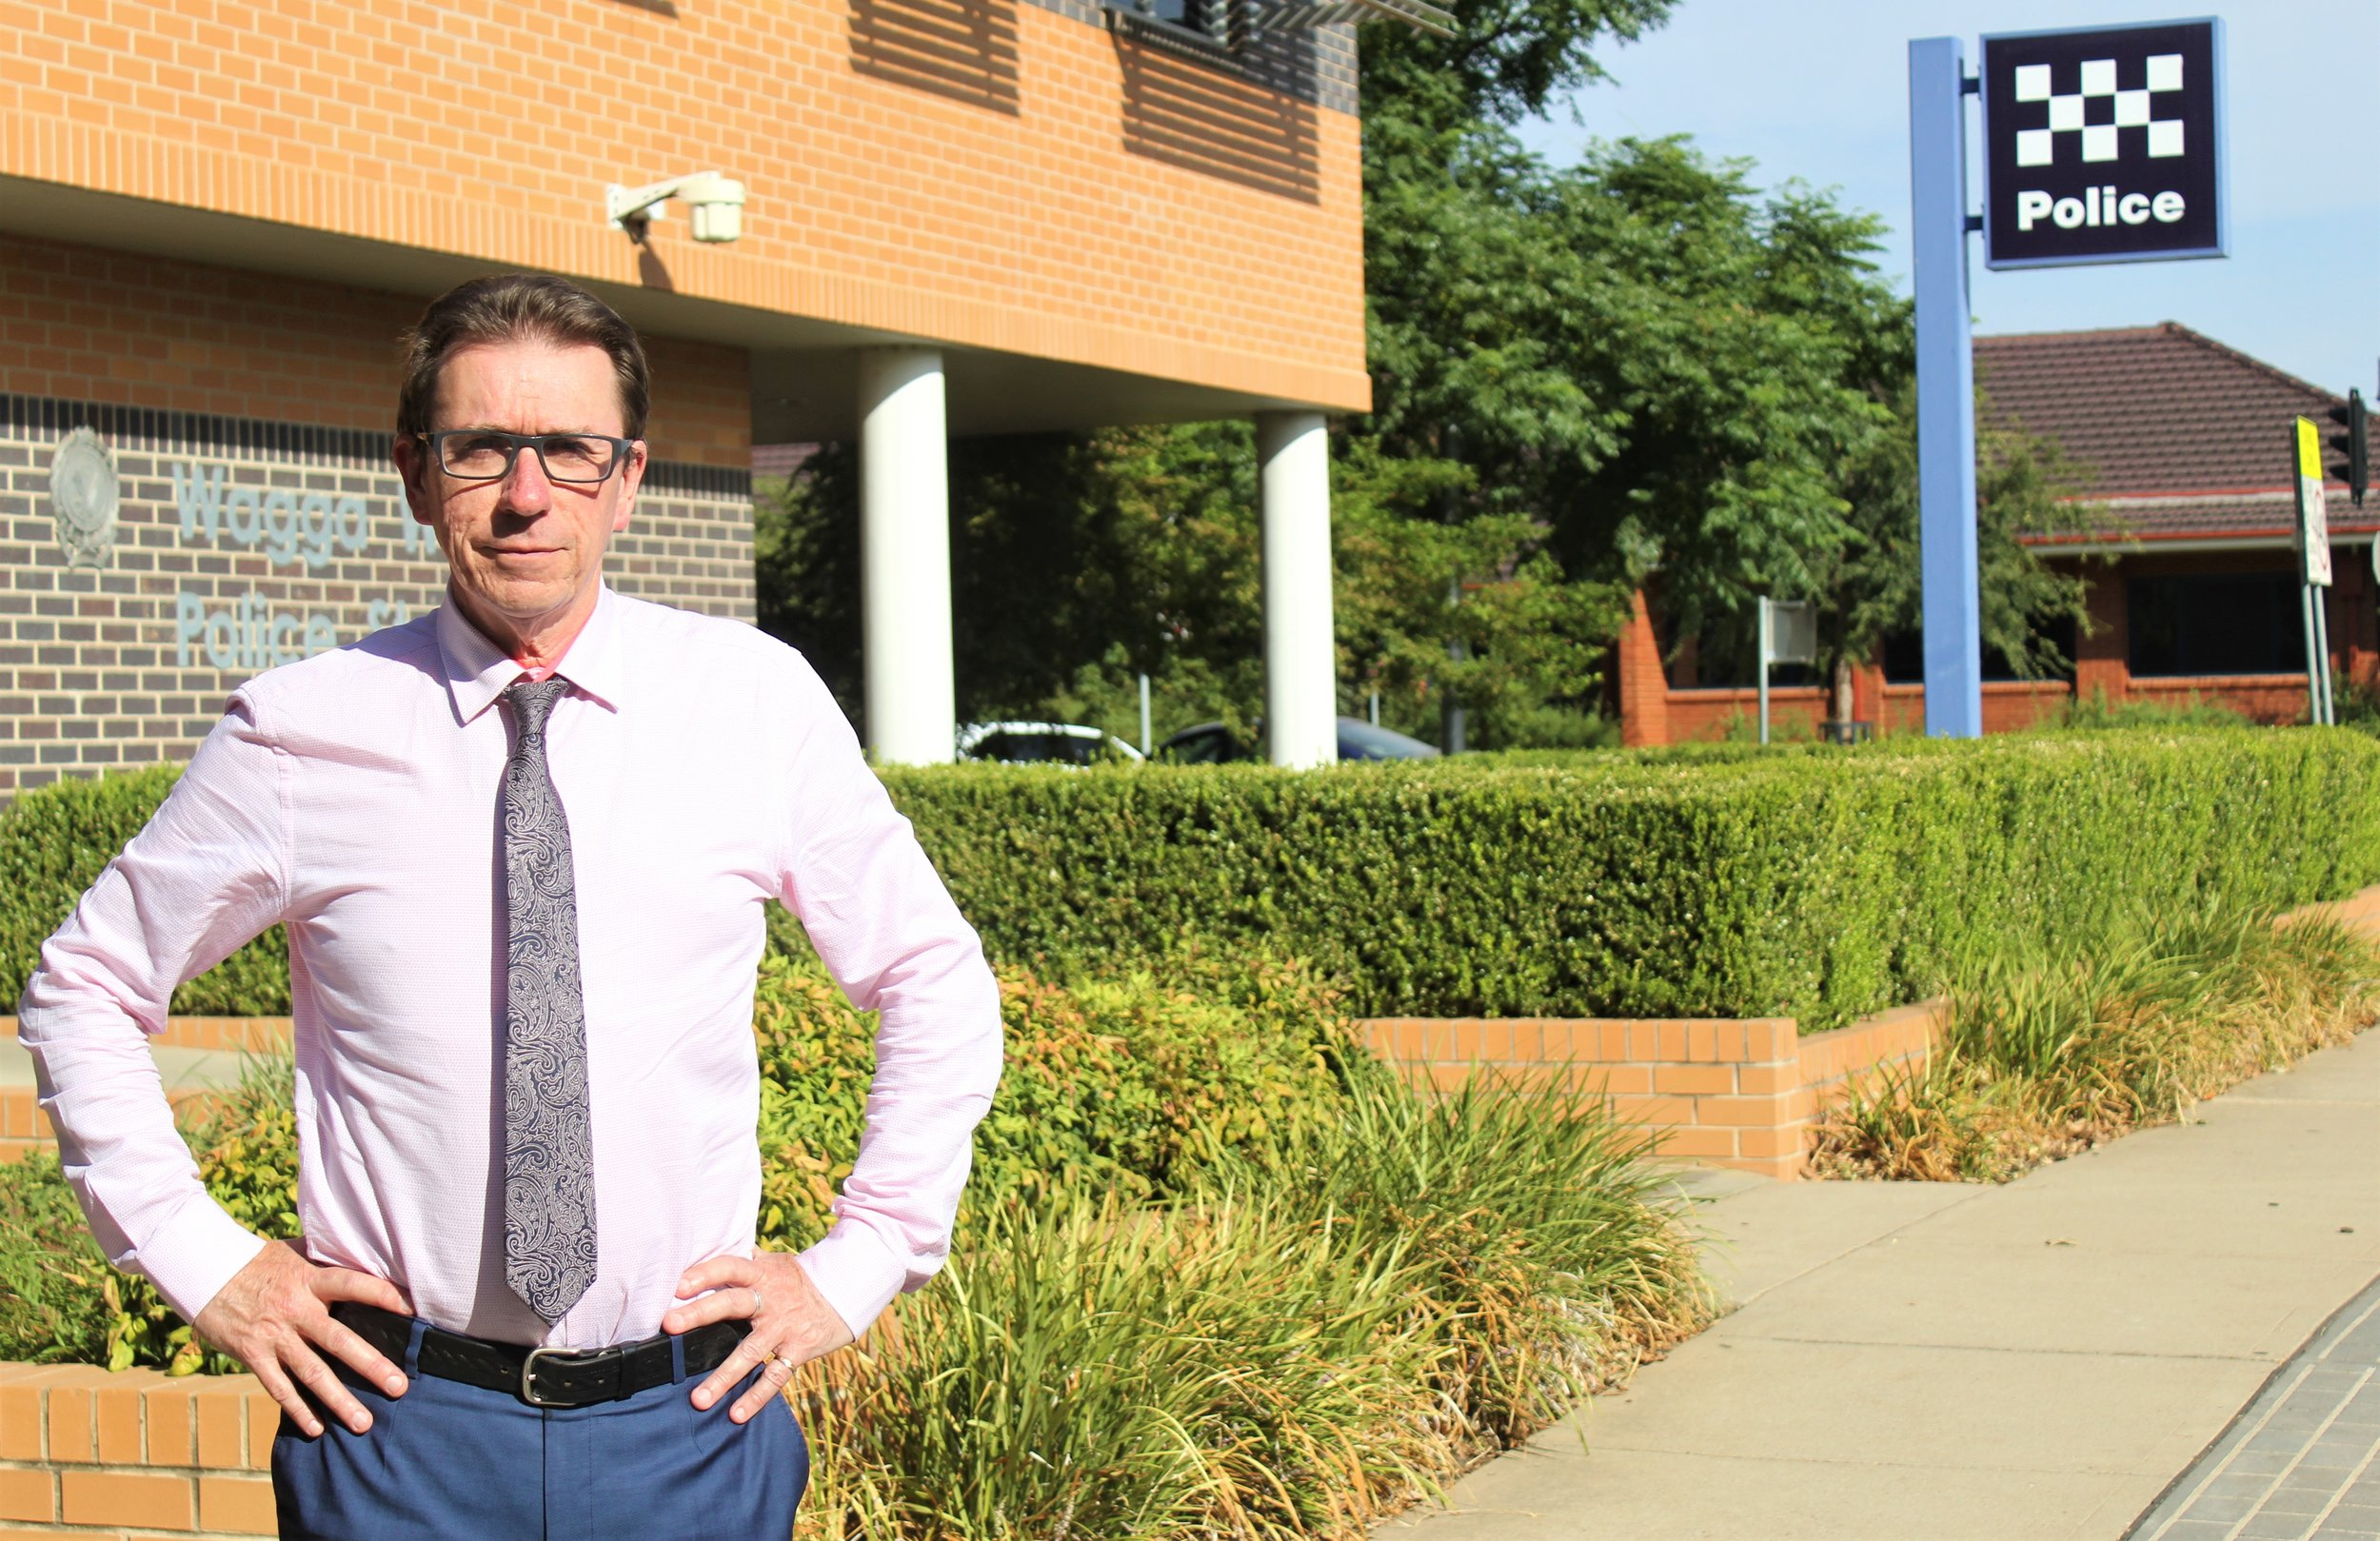 Safe,Supported Communities - Alongside an anticipated population growth comes the need to ensure safety across our community. As the Member for Wagga Wagga, I am making sure your concerns are met with action. As a foundation, we need sufficient police numbers, drug treatment and rehabilitation facilities and a strong approach to crime prevention. Click on the issues below to find out more.